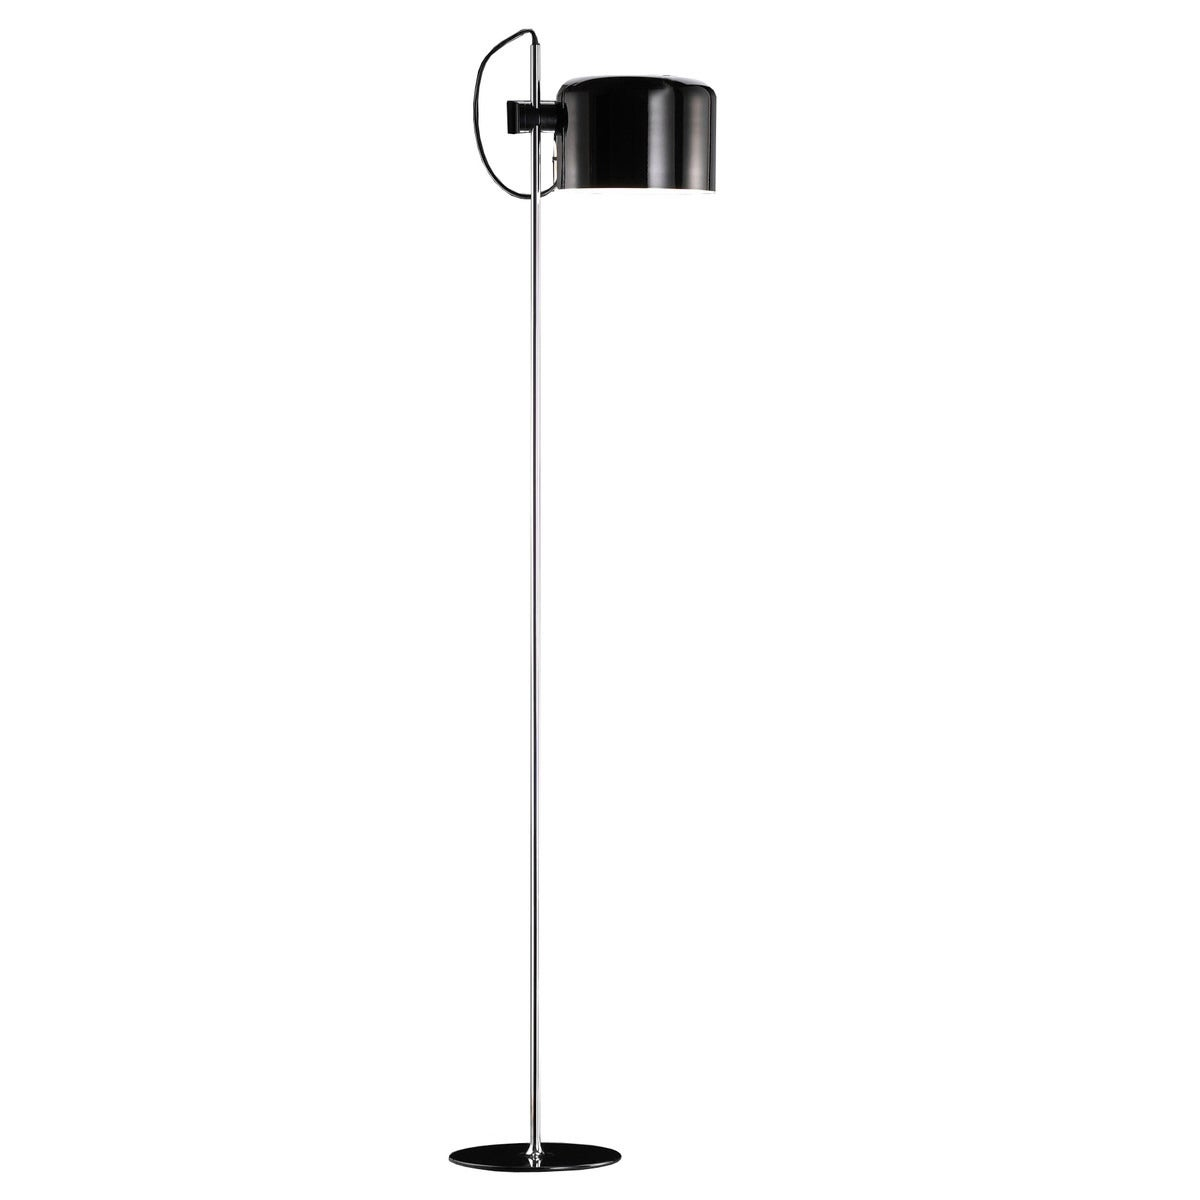 coupe 3321 floor lamp by joe colombo for sale at 1stdibs. Black Bedroom Furniture Sets. Home Design Ideas